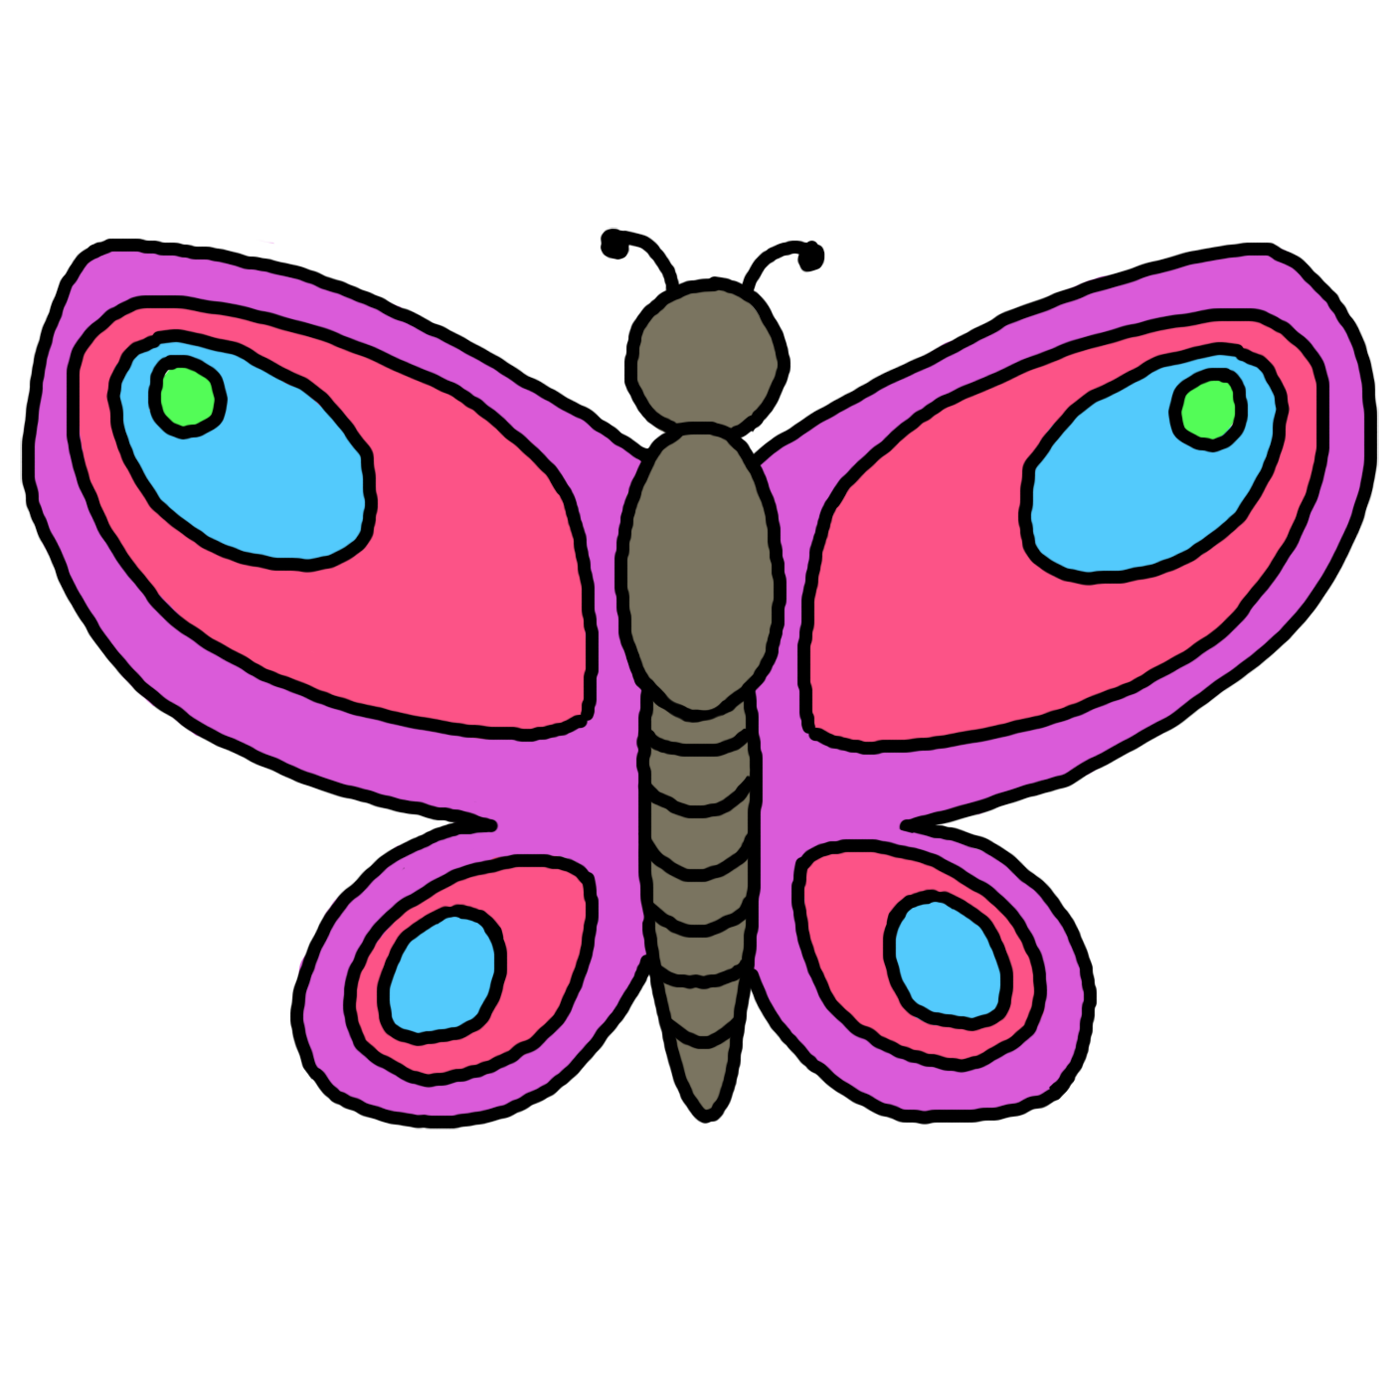 Free clipart butterfly images graphic free download Butterfly Clipart | Clipart Panda - Free Clipart Images graphic free download